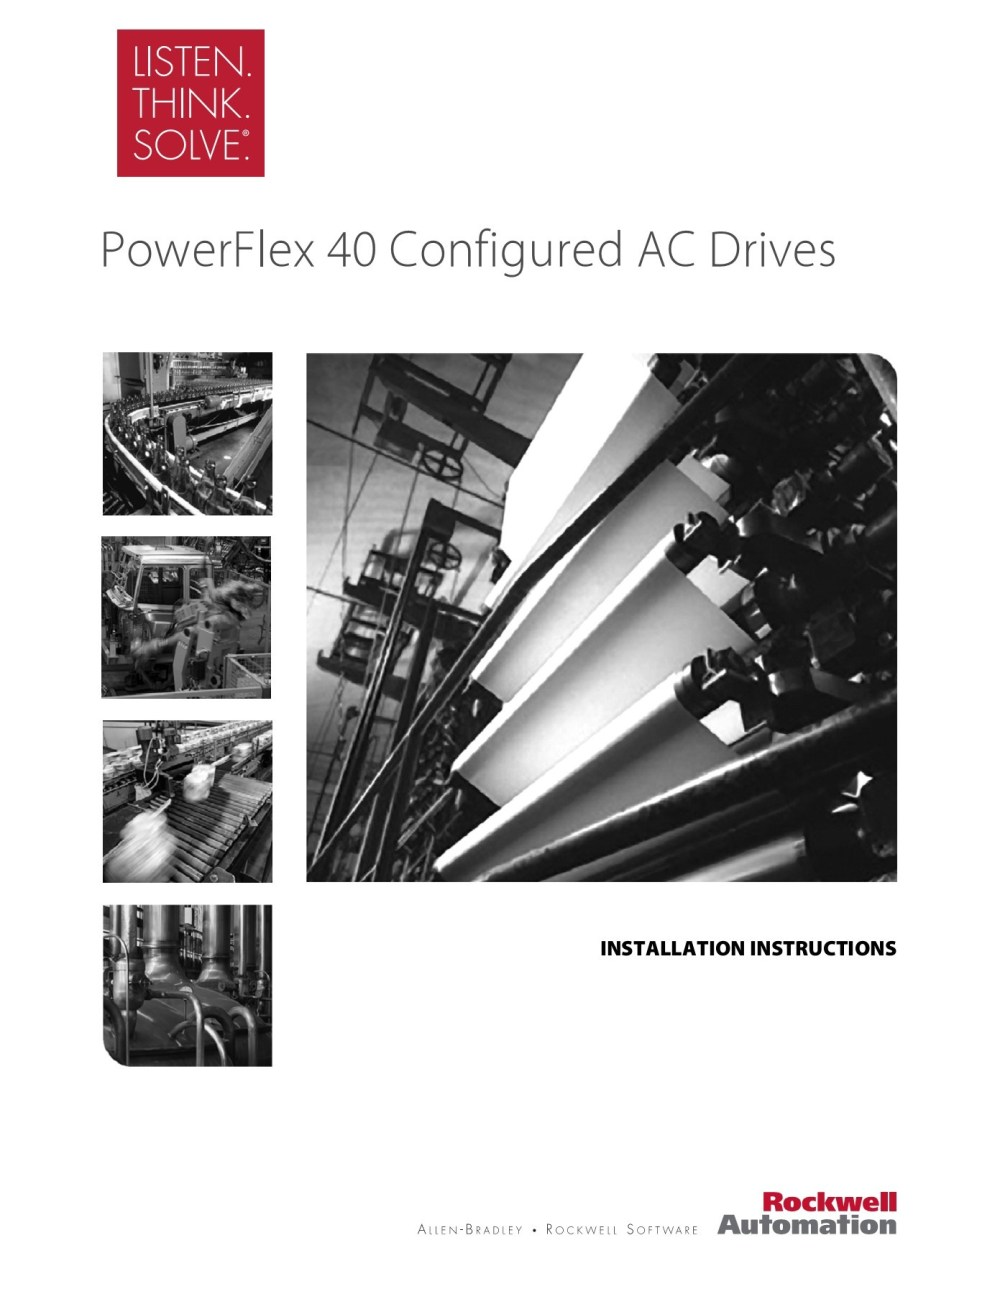 medium resolution of powerflex 40 configured ac drives efes otomasyon pages 1 50 text version fliphtml5